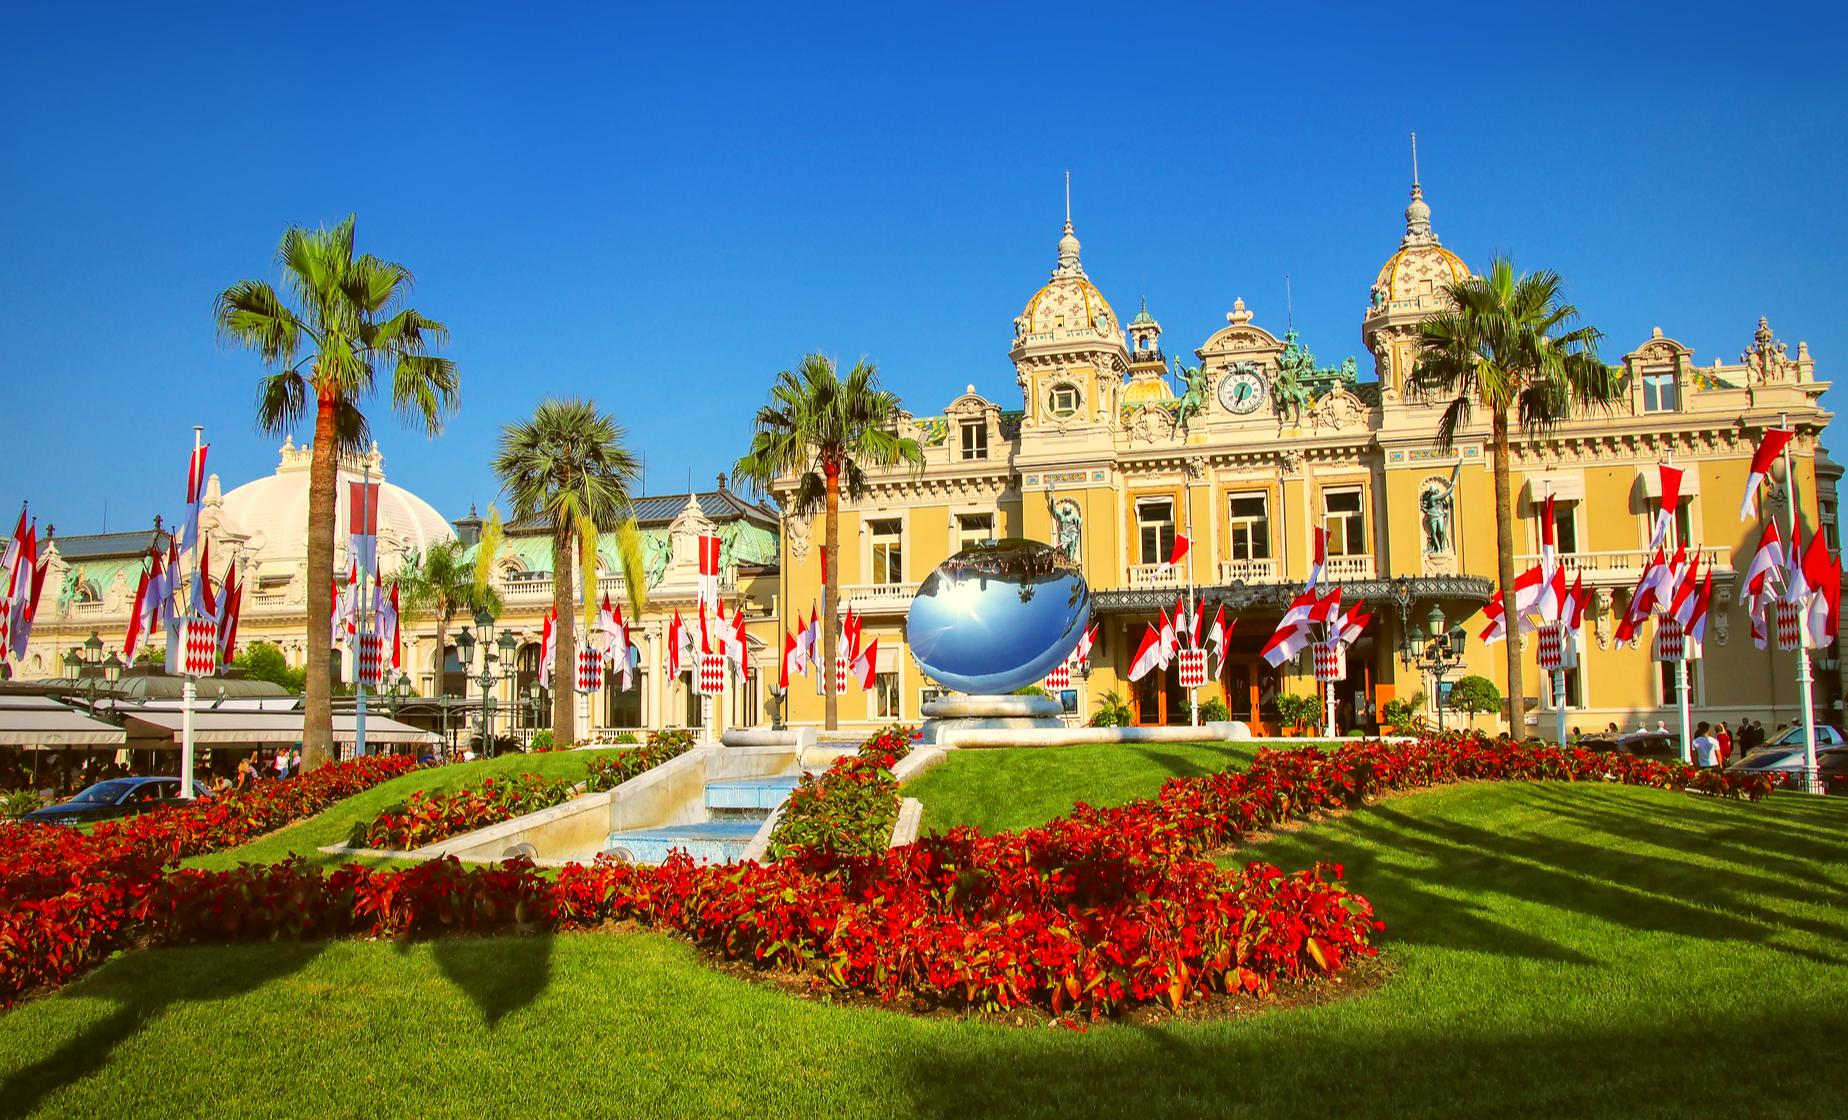 French Riviera Tour (Royal Prince Palace, Fragonard, La Turbie)